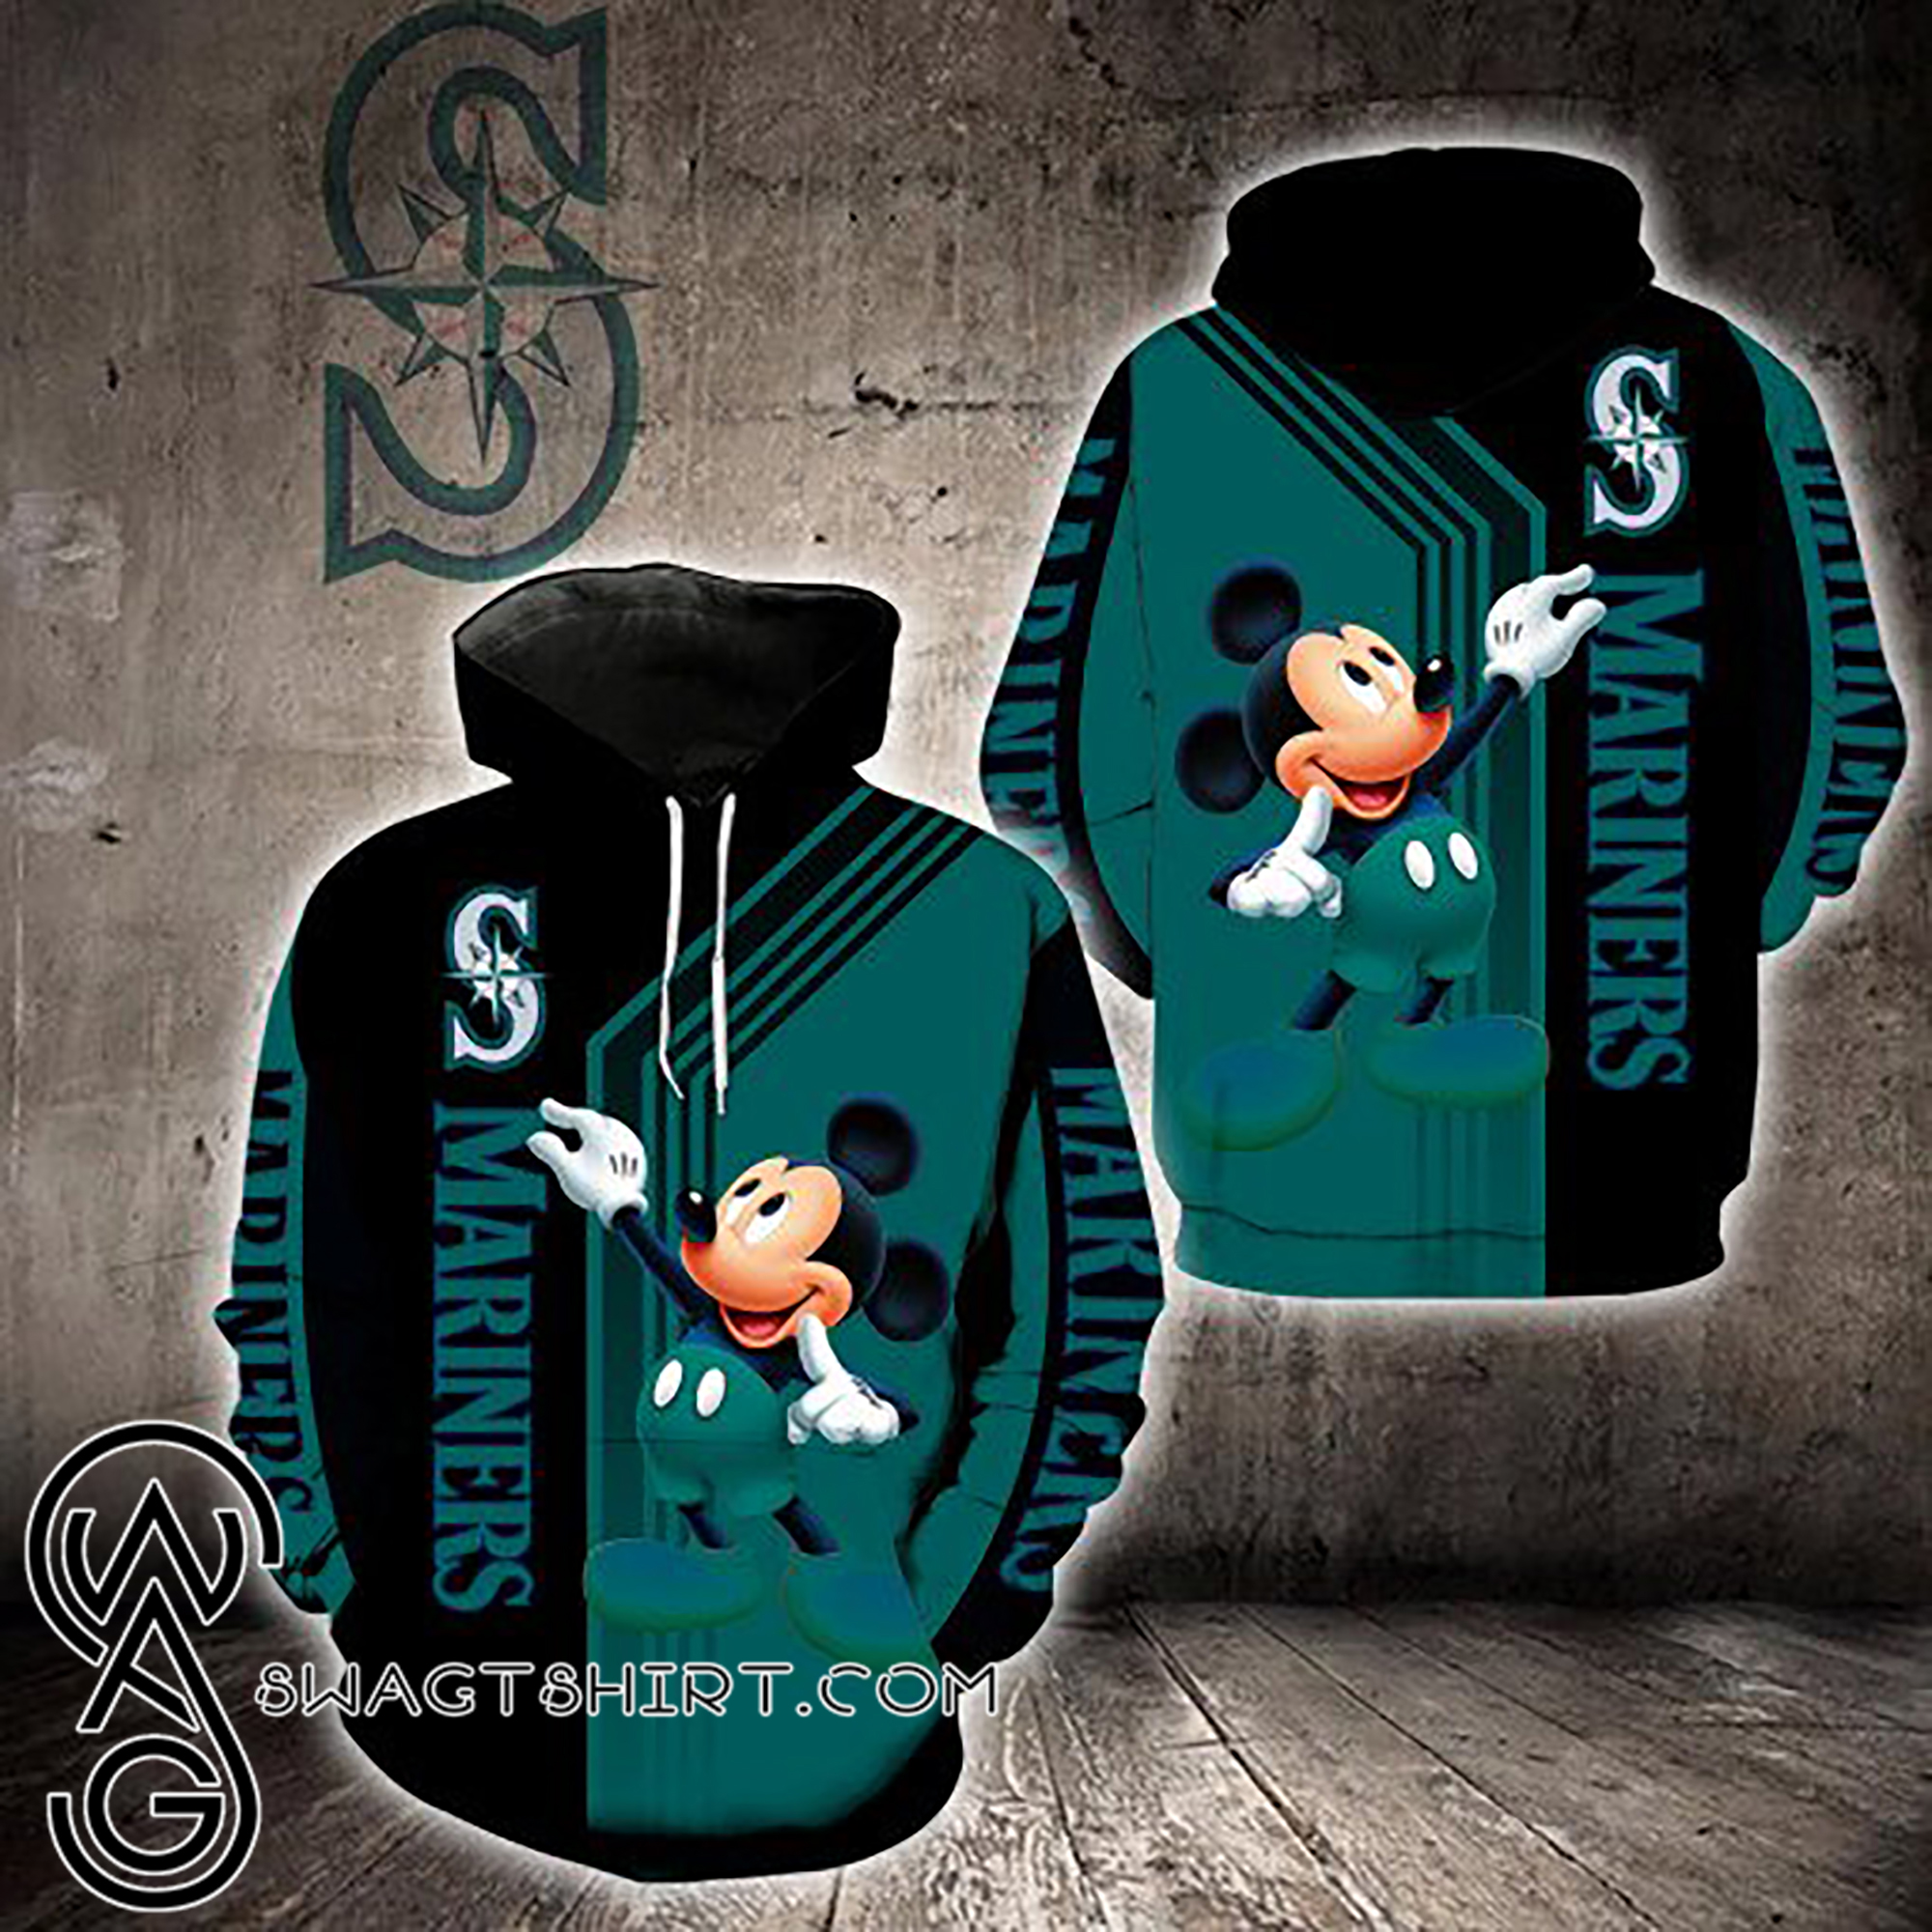 Mickey mouse seattle mariners all over print shirt